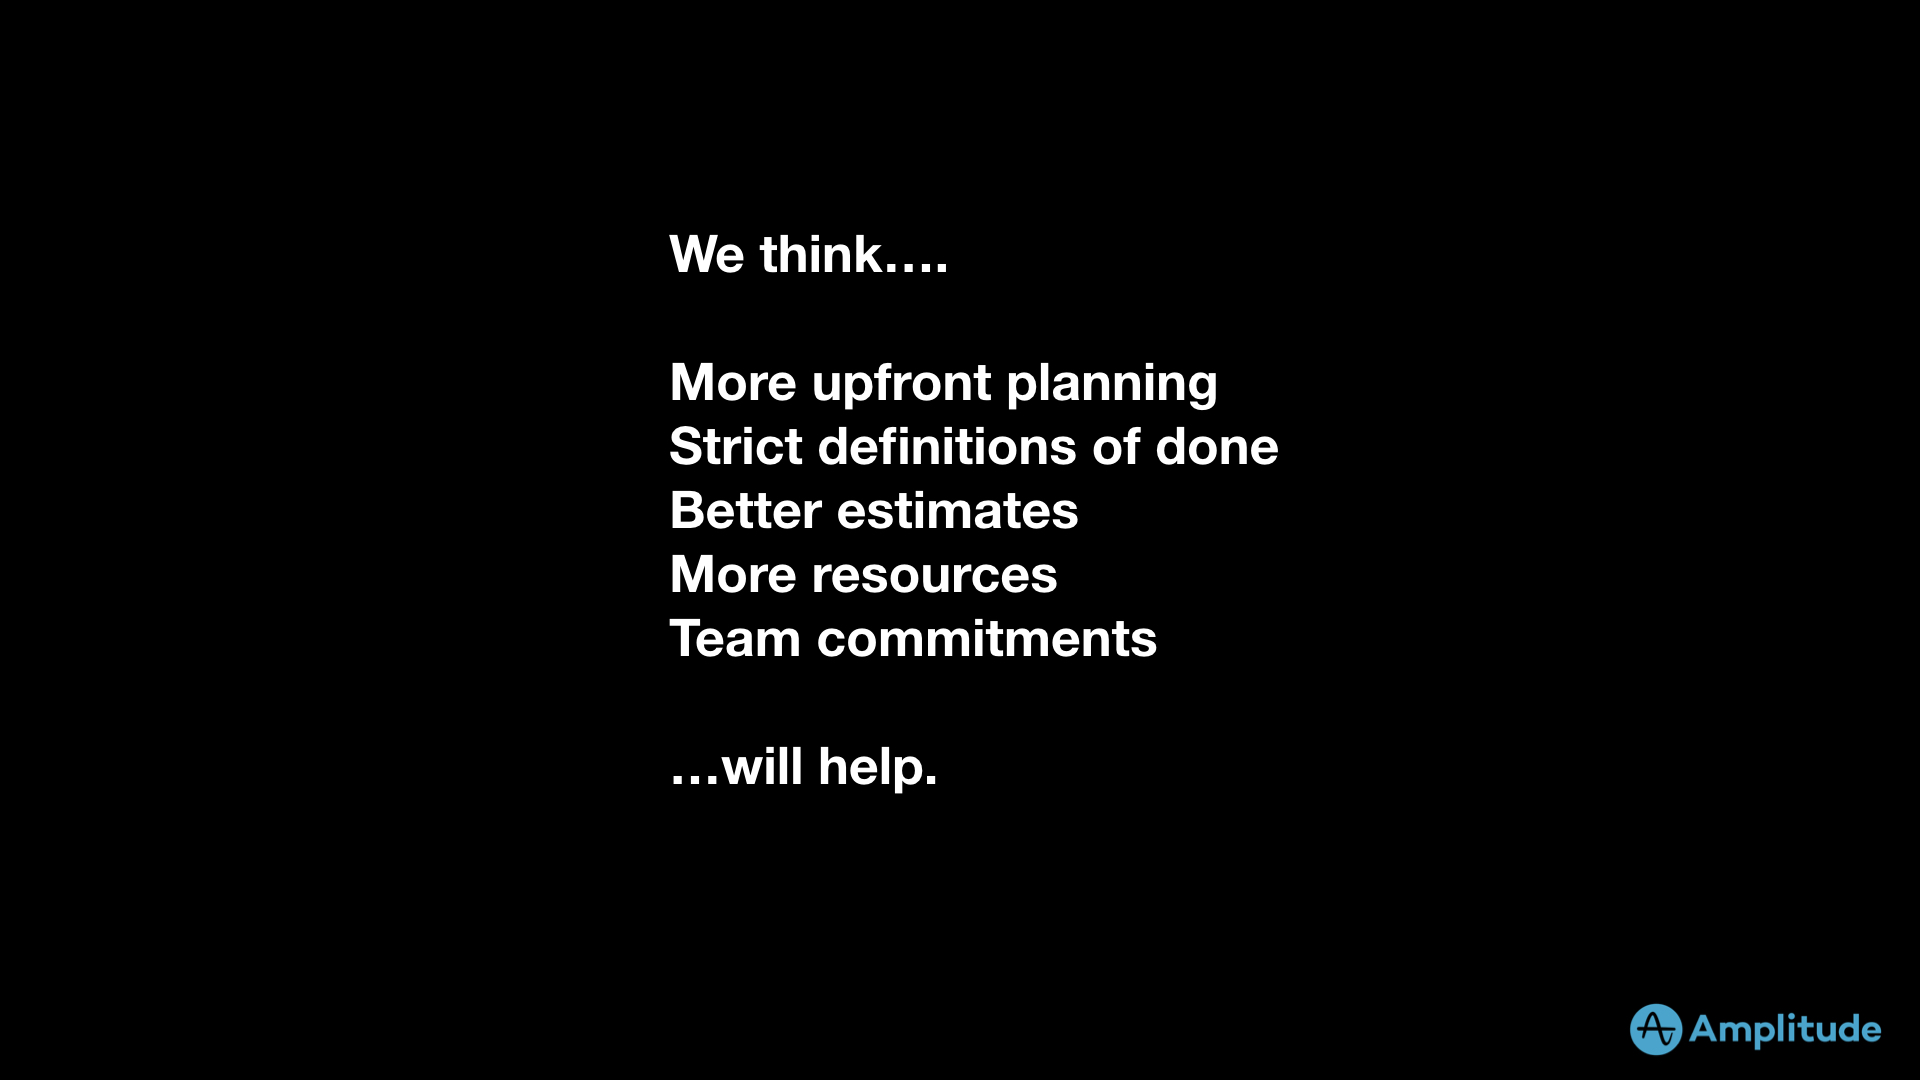 what-we-think-helps-product-team